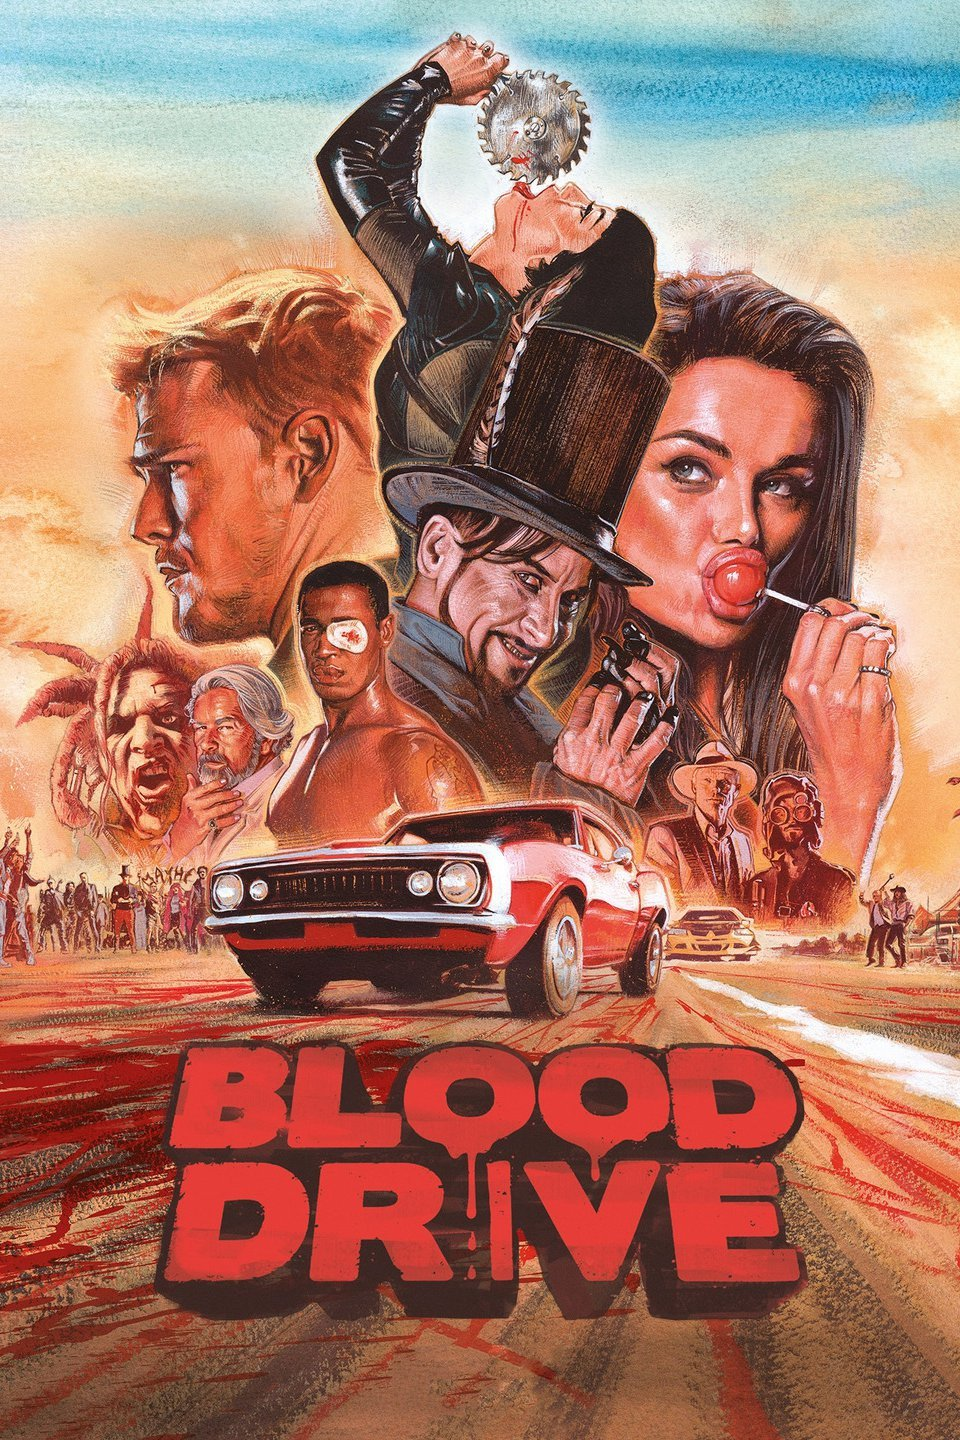 Blood Drive Season 1 Episode 11 Download HDTV Micromkv